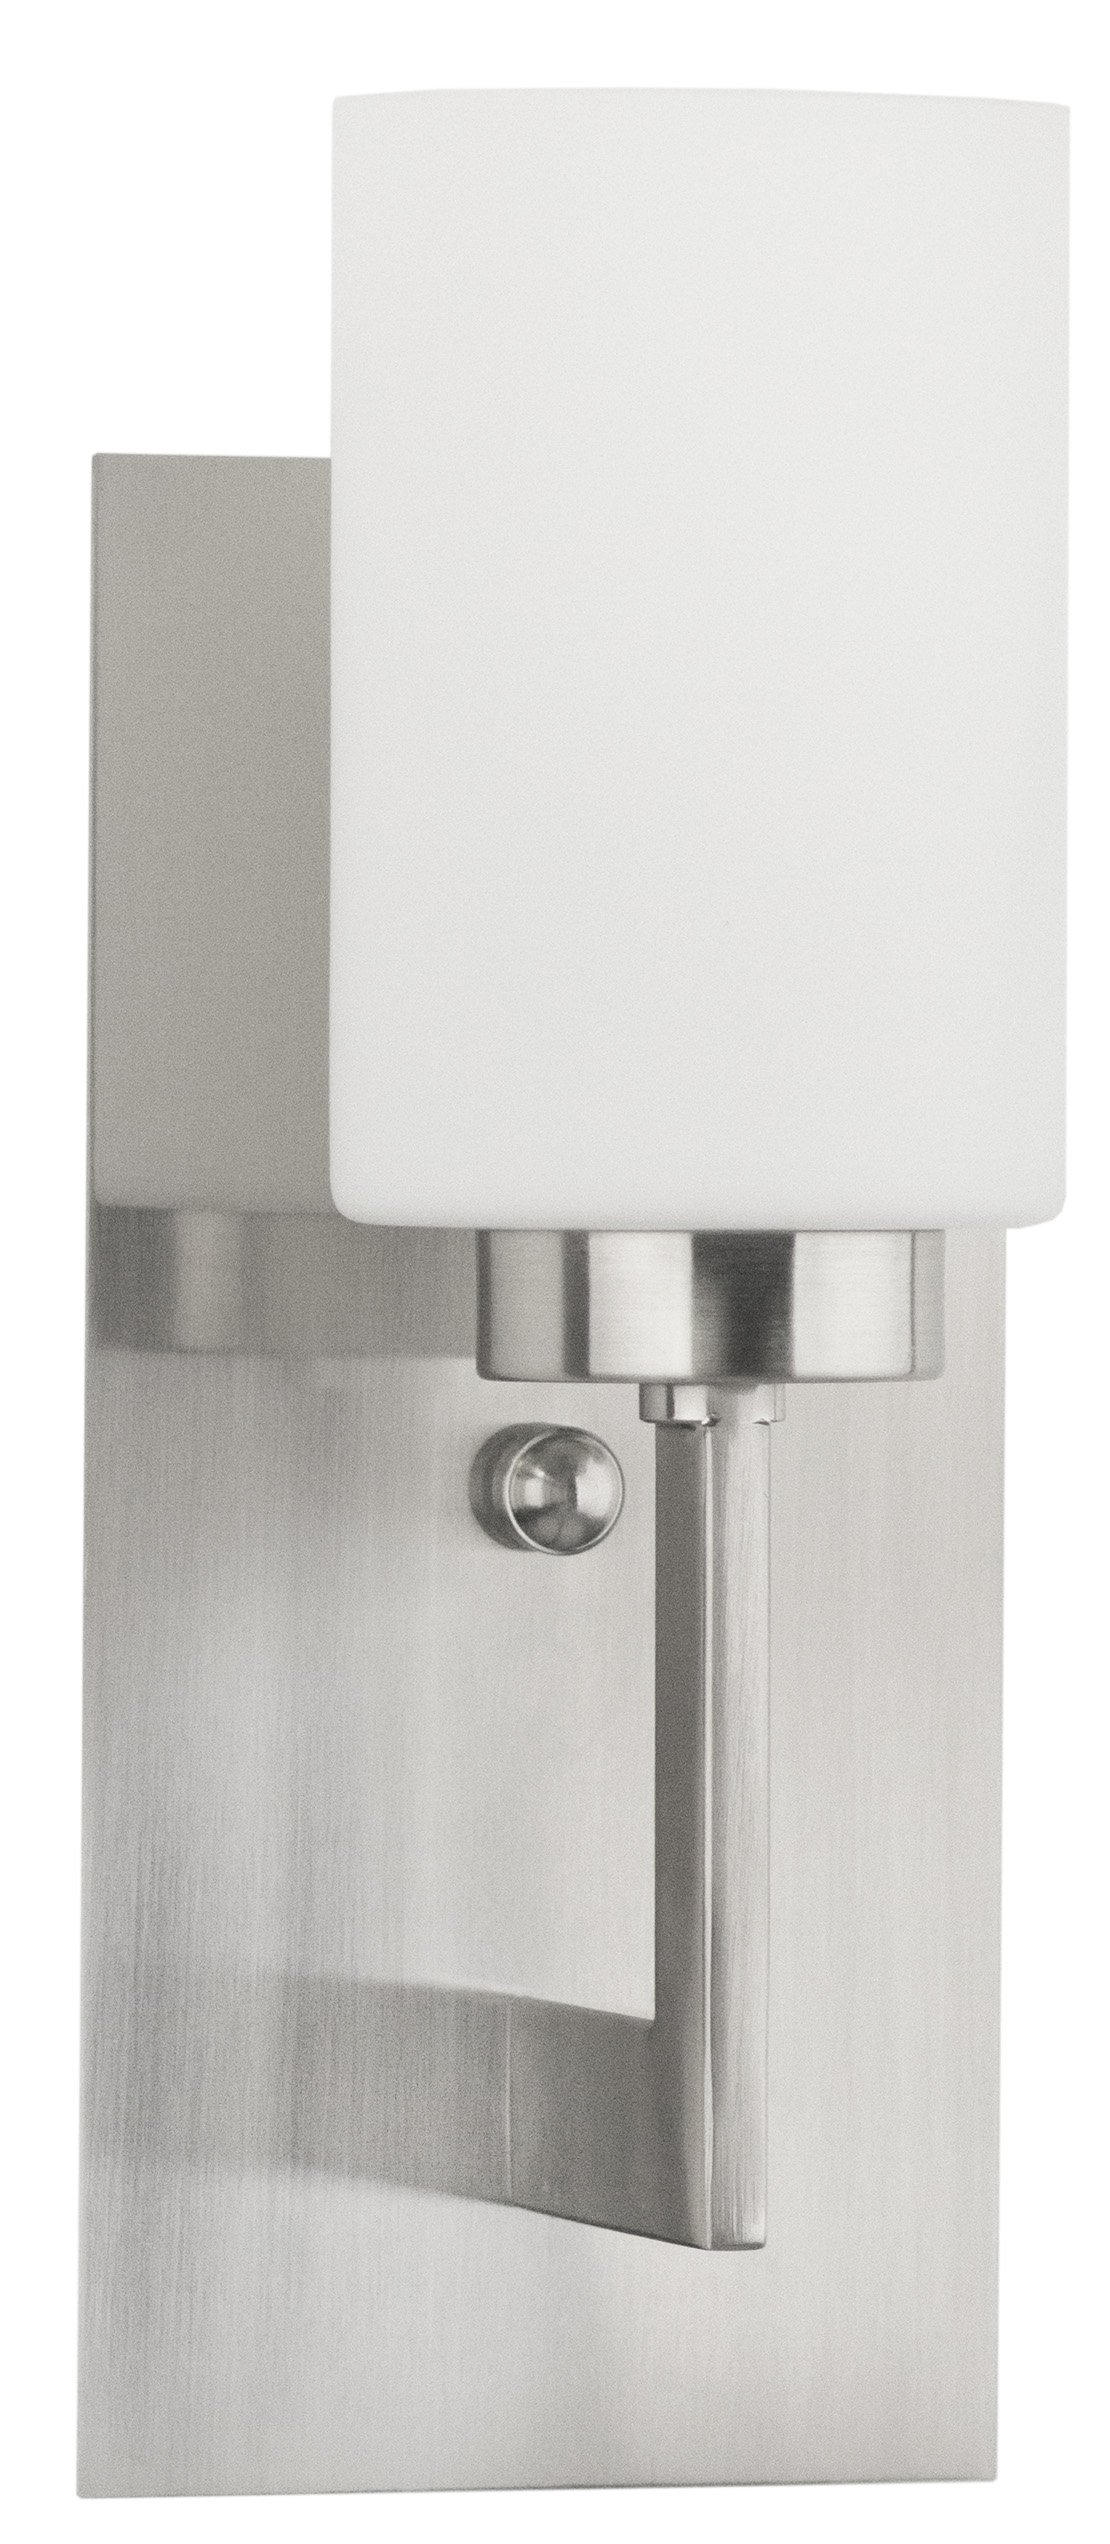 Brio Wall Sconce Light Fixture – Brushed Nickel w/ Frosted Glass Shade - Linea di Liara LL-WL151-BN